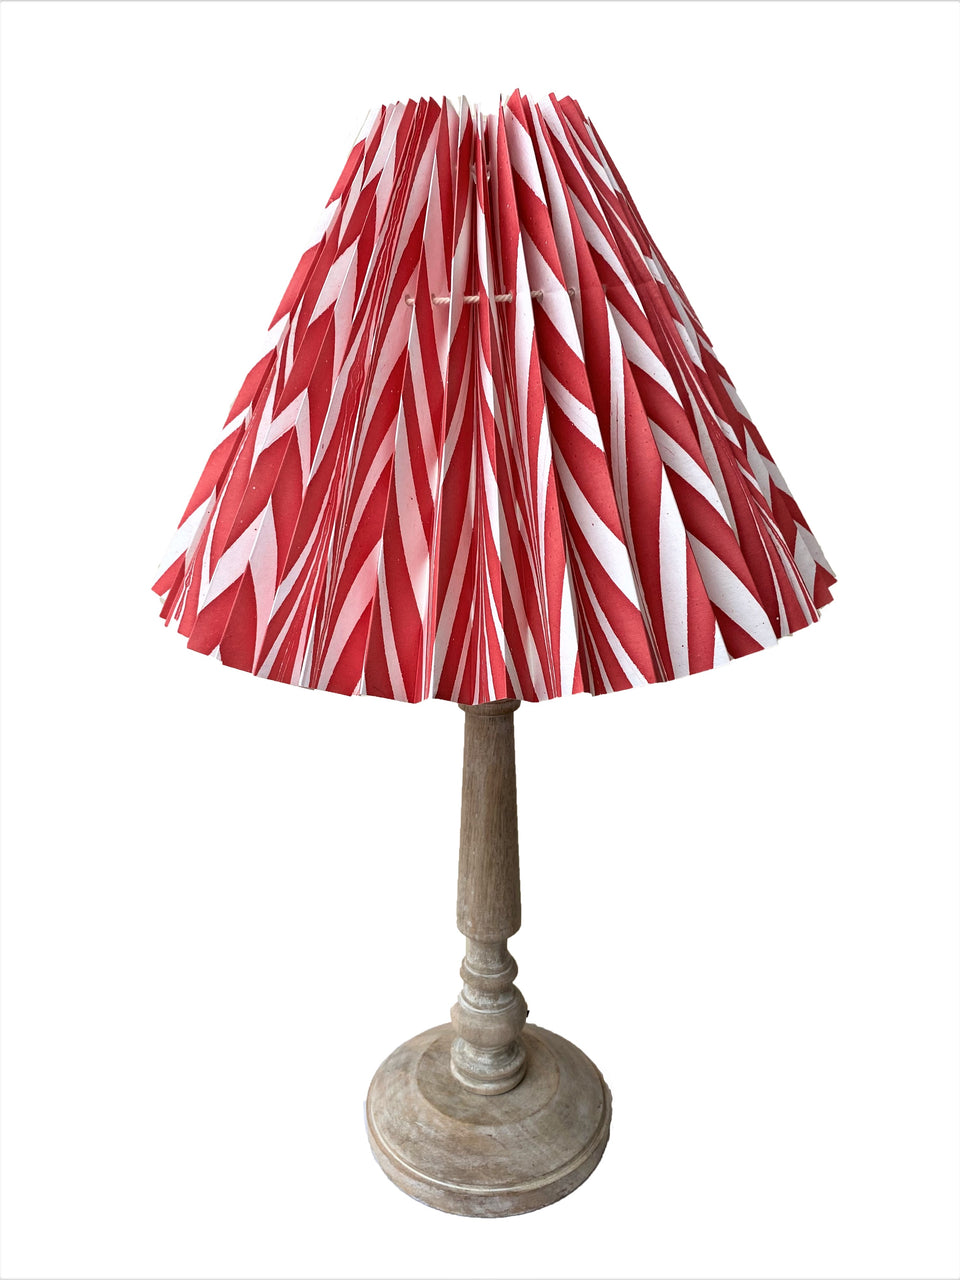 HANDMADE PAPER LAMPSHADE IN BRIGHT RED AND WHITE CHEVRON